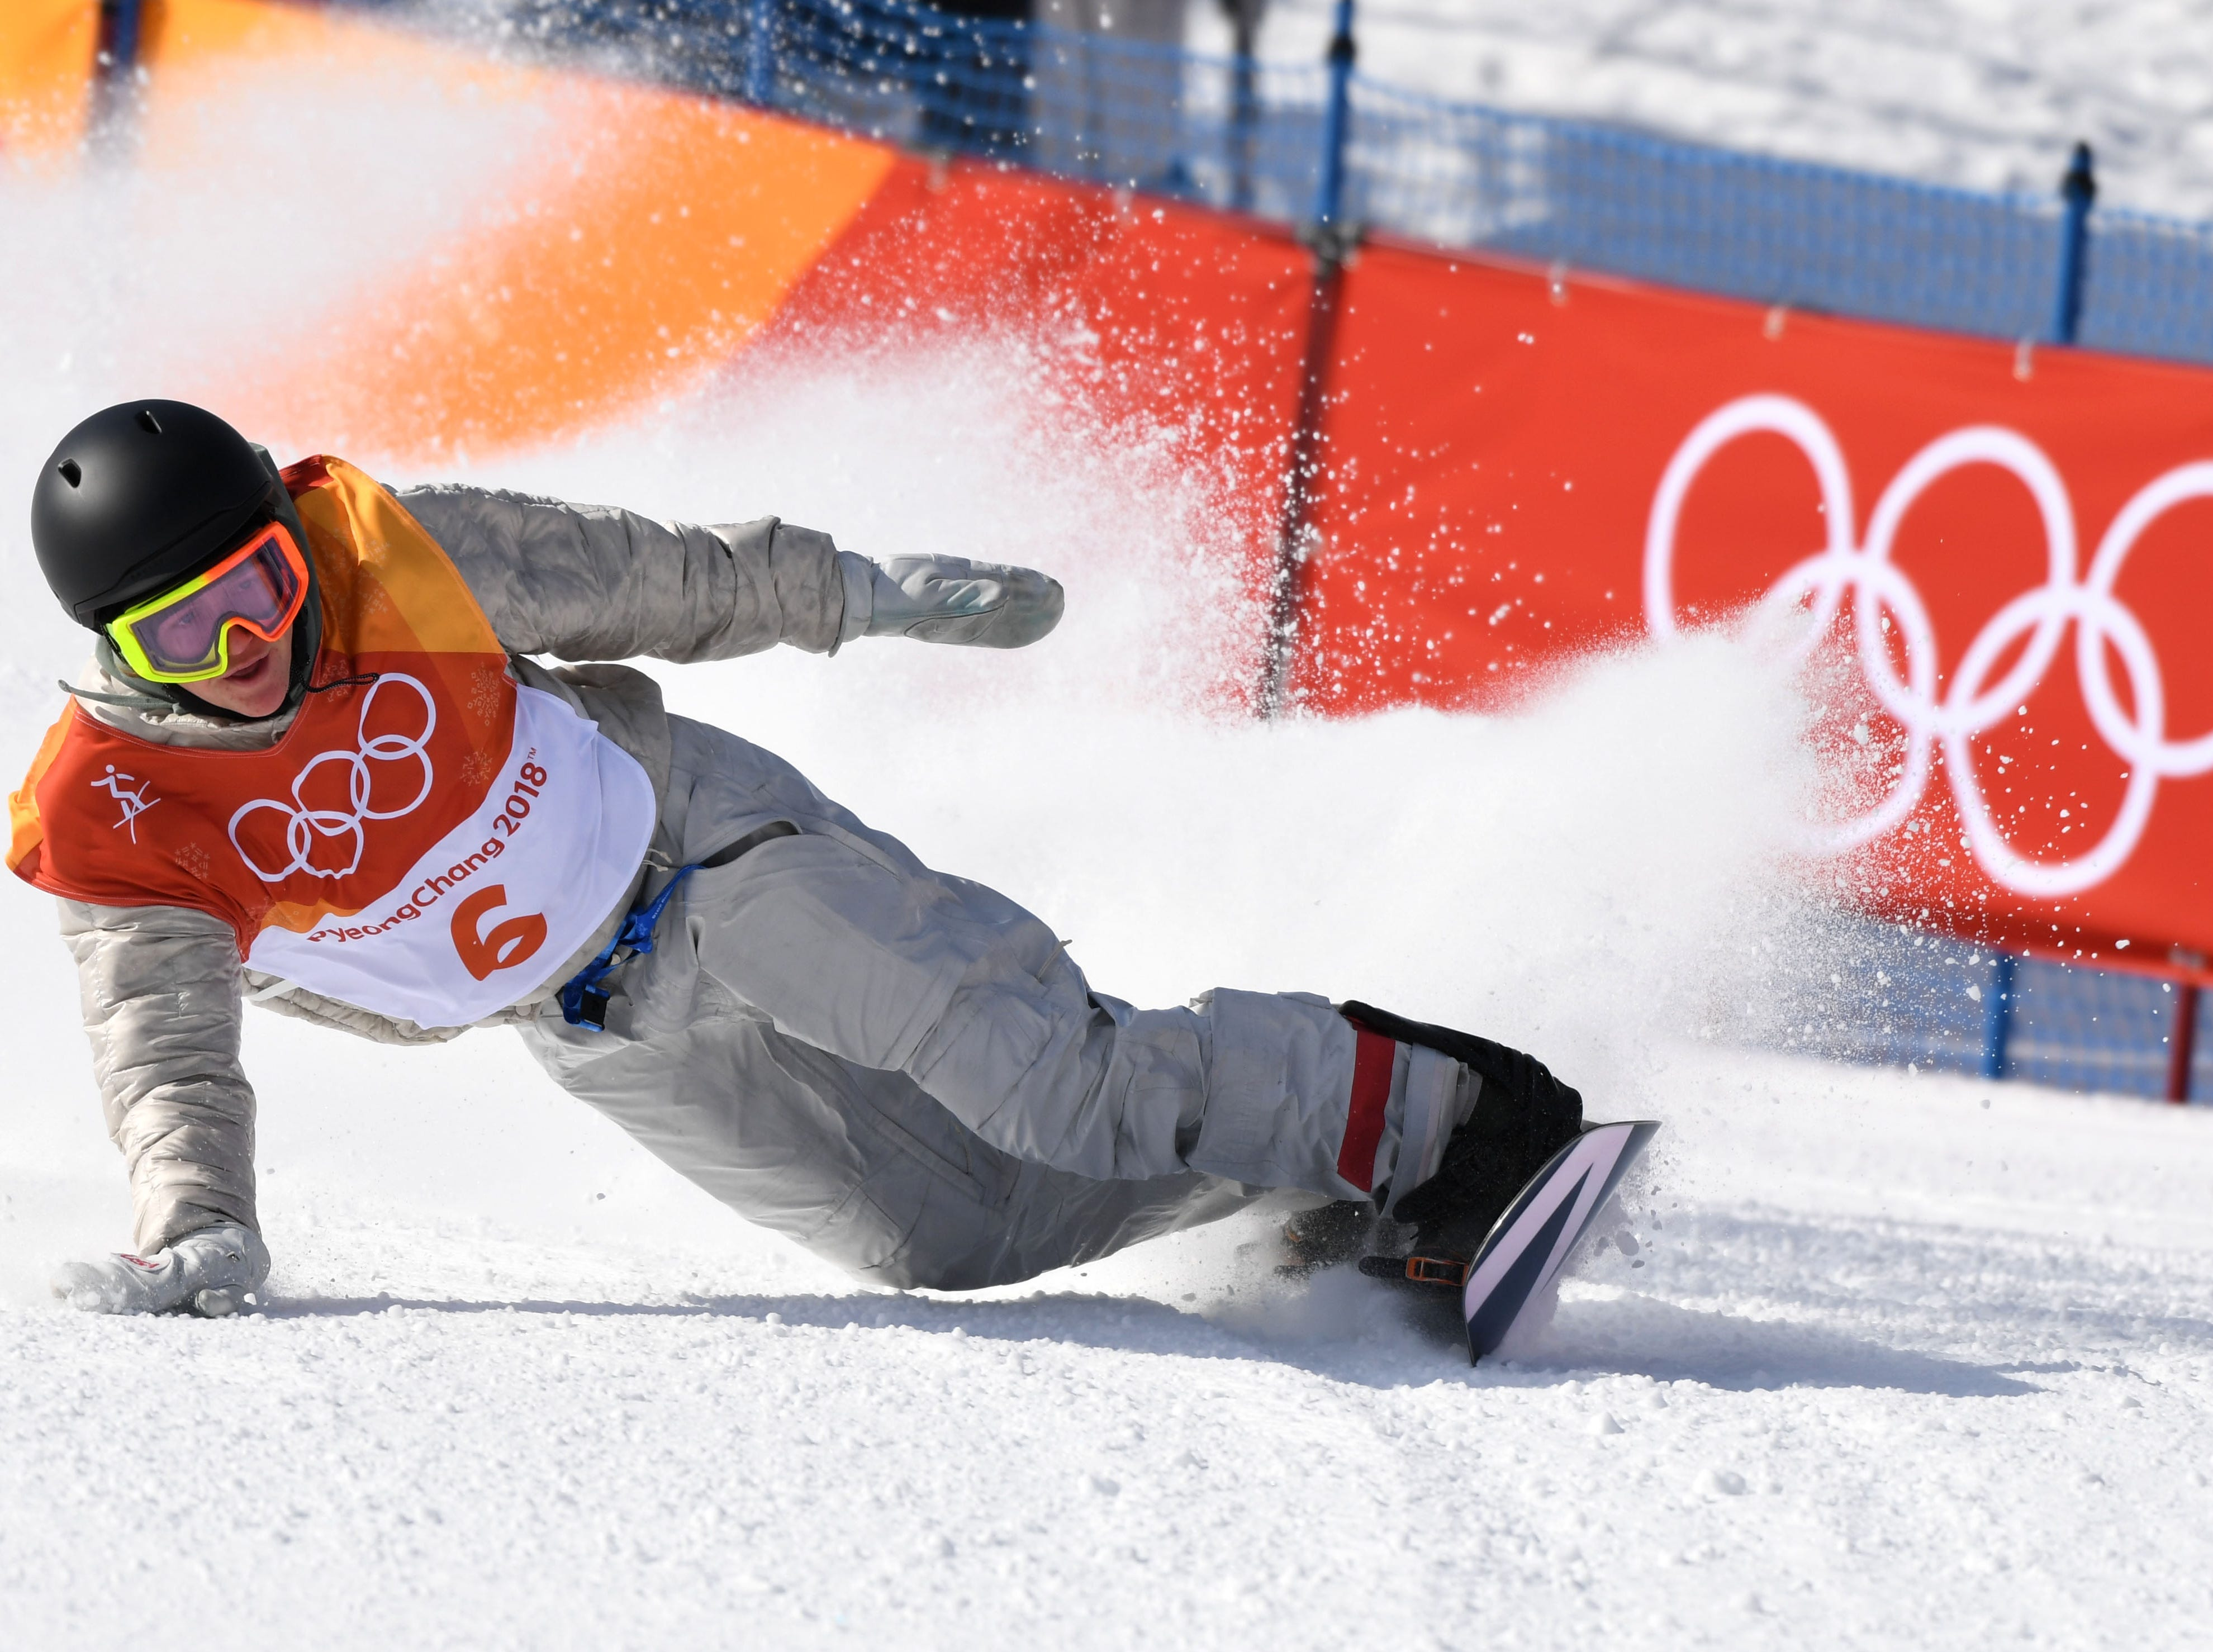 Feb. 11: Red Gerard (USA) competes in the snowboard slopestyle during the Pyeongchang Winter Games. He would win the gold medal.